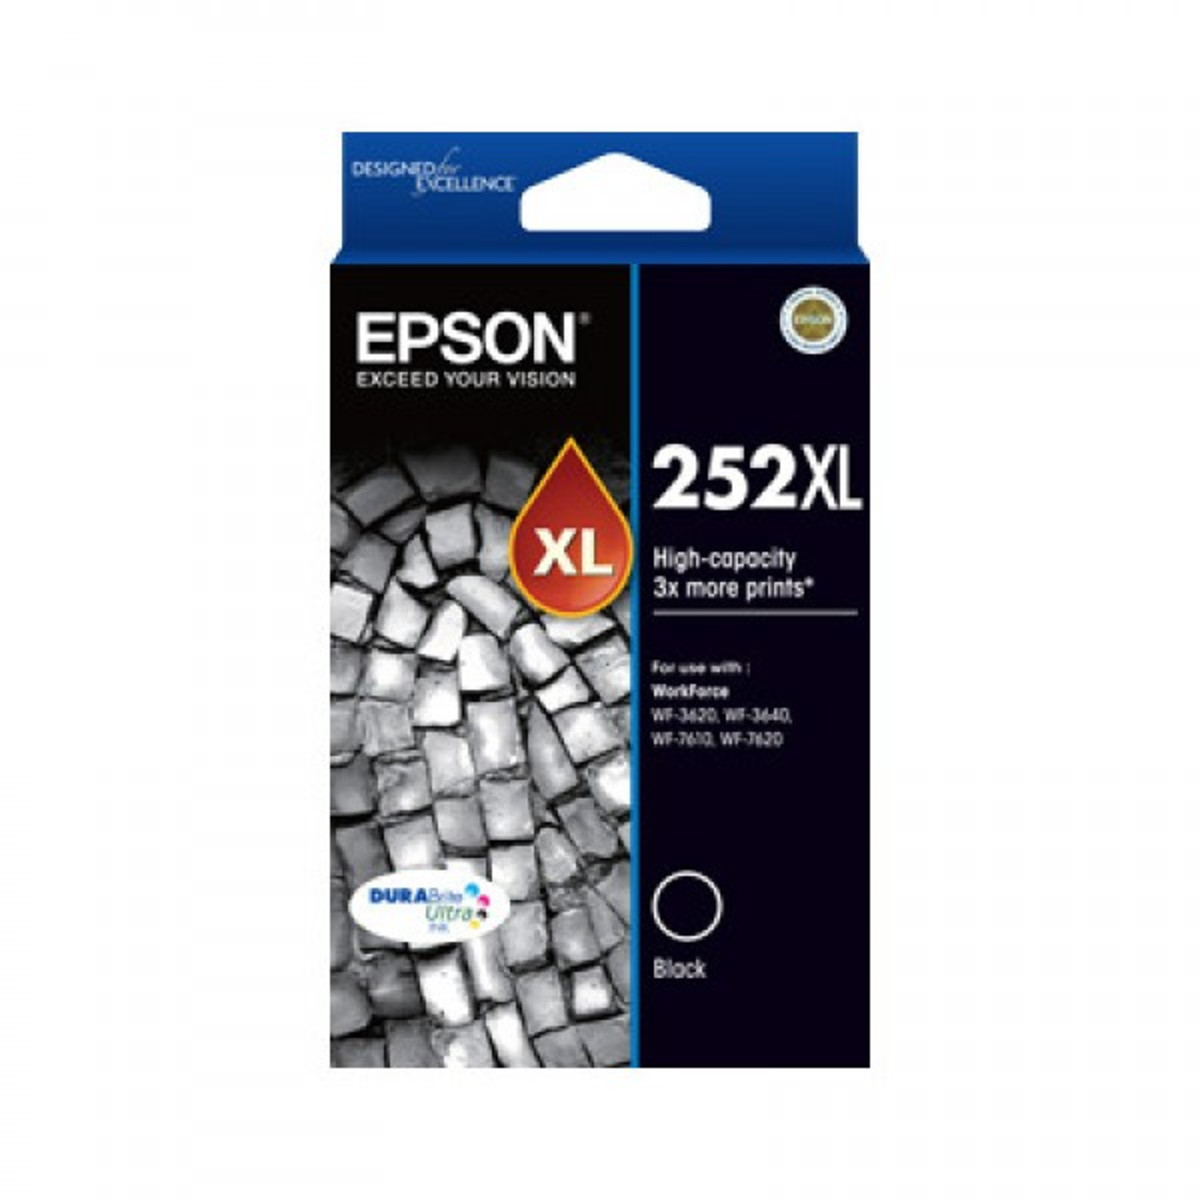 Epson 252XL Black Ink Cartridge - High Yield